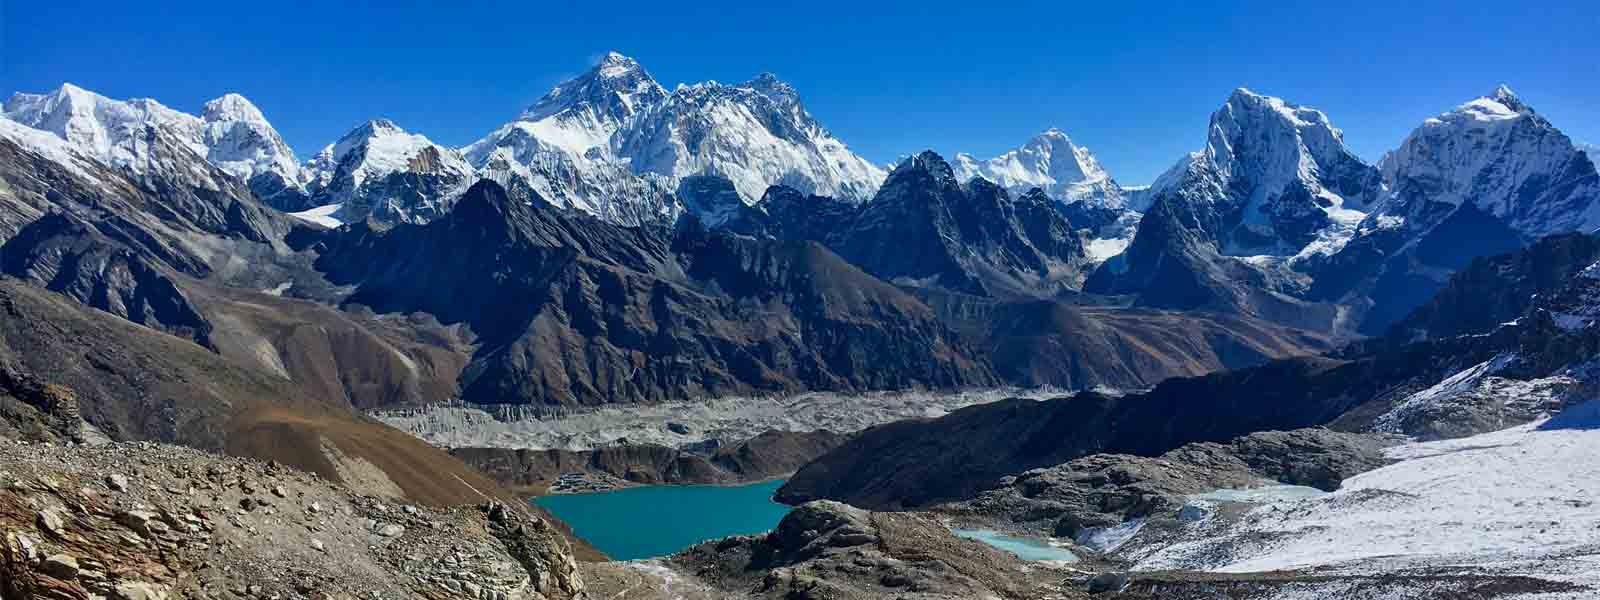 Mt. Everest Views from Gokyo Ri Peak